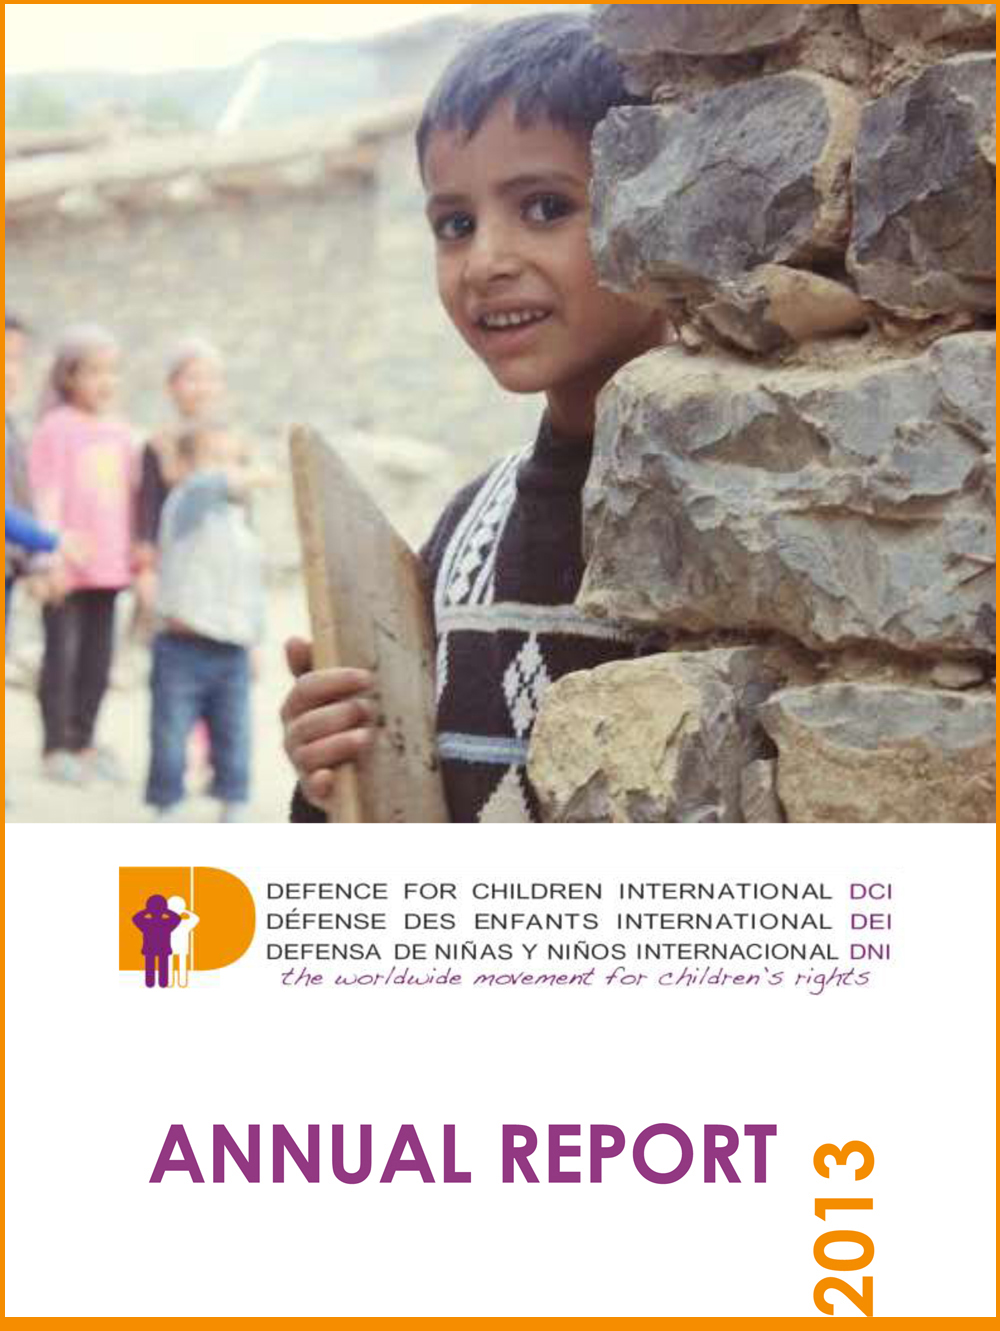 AnnualReport2013 Cover